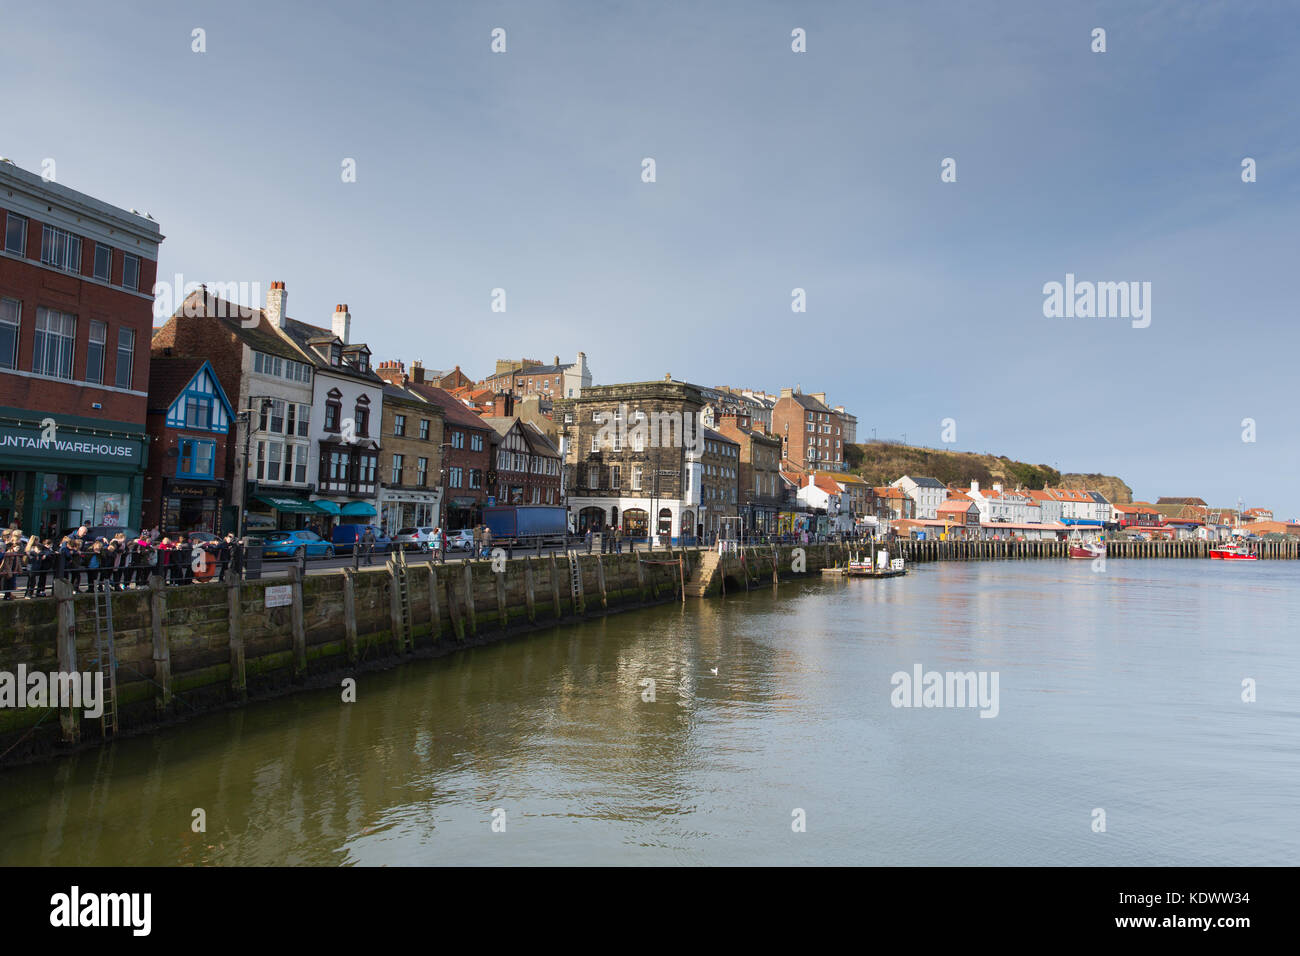 Whitby harbour North Yorkshire England uk seaside town and tourist destination fine February weather - Stock Image